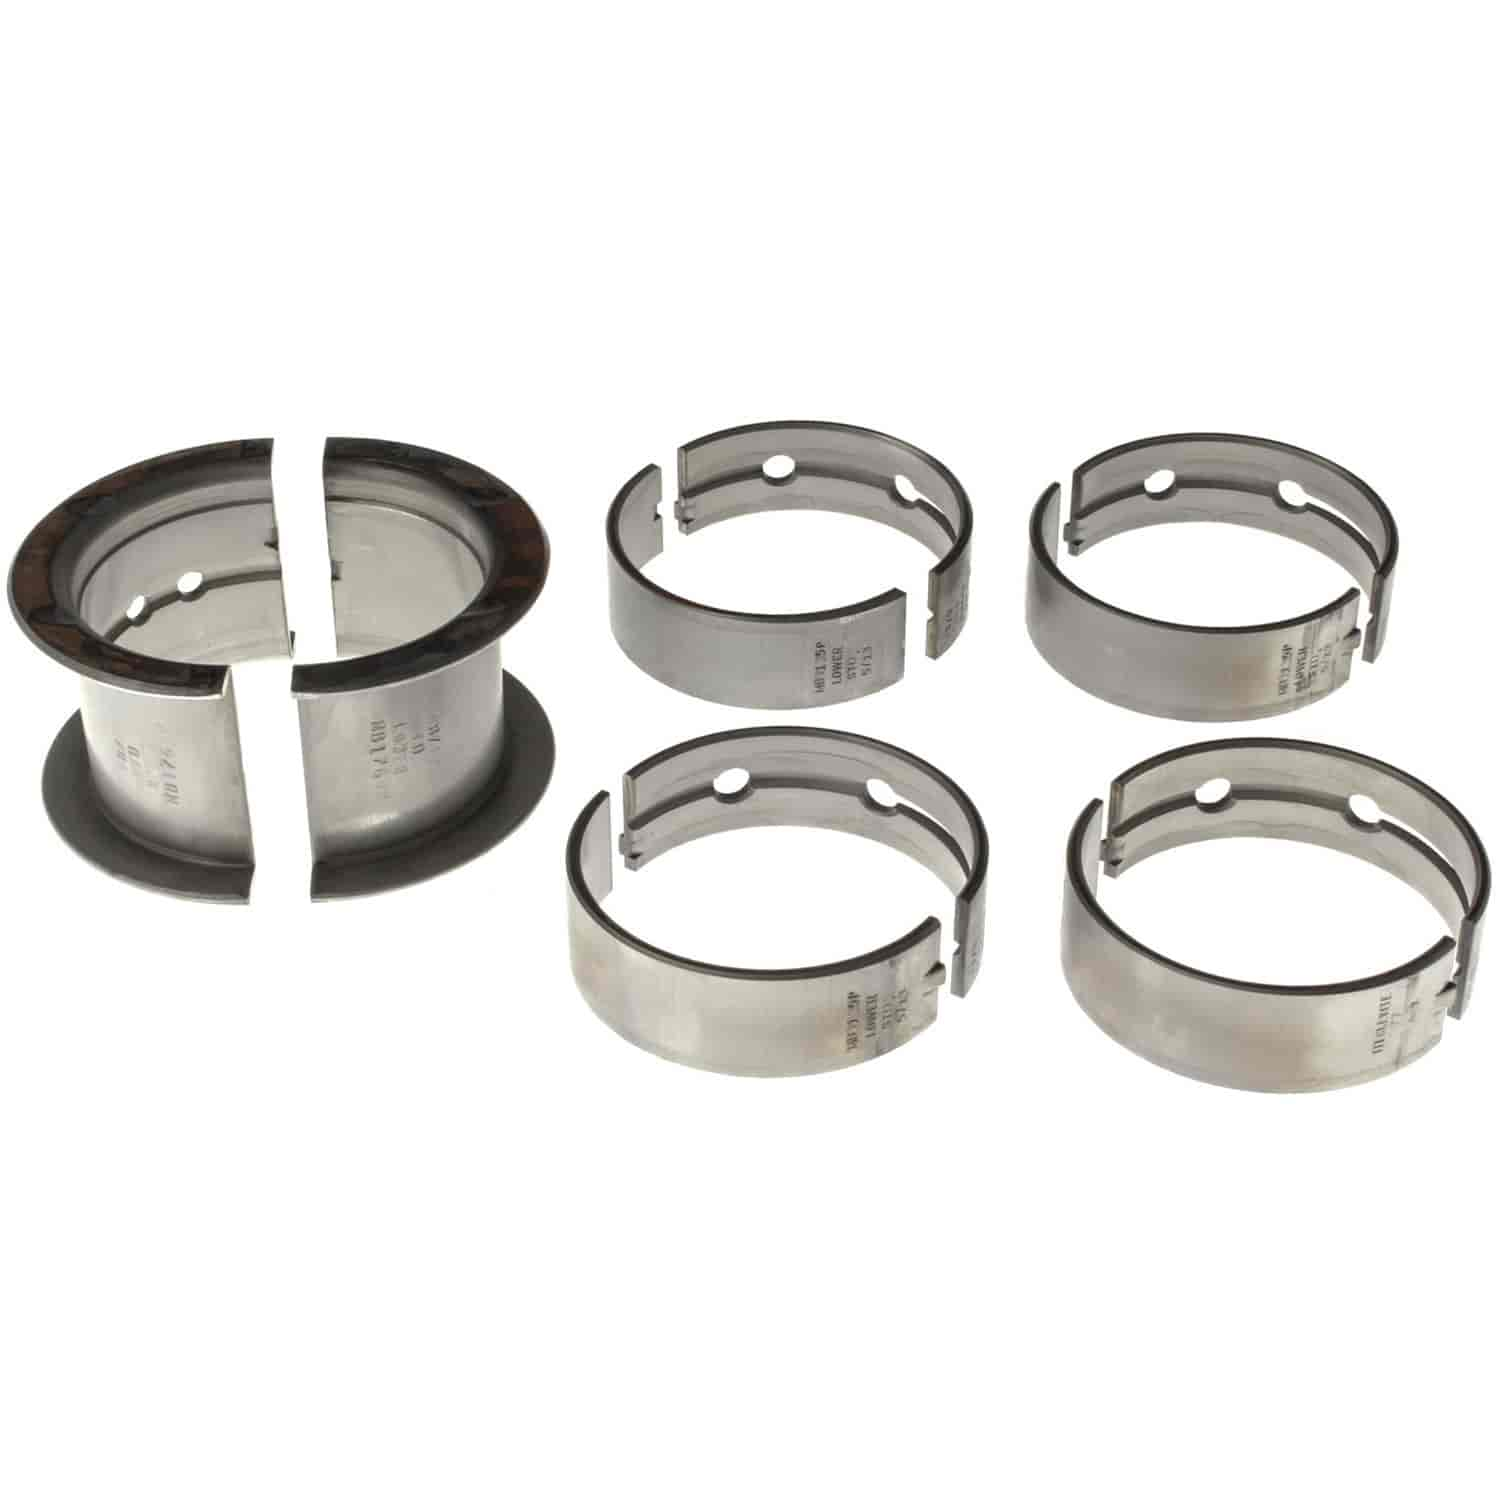 Clevite MS429P - Clevite 77 High-Performance Bearings